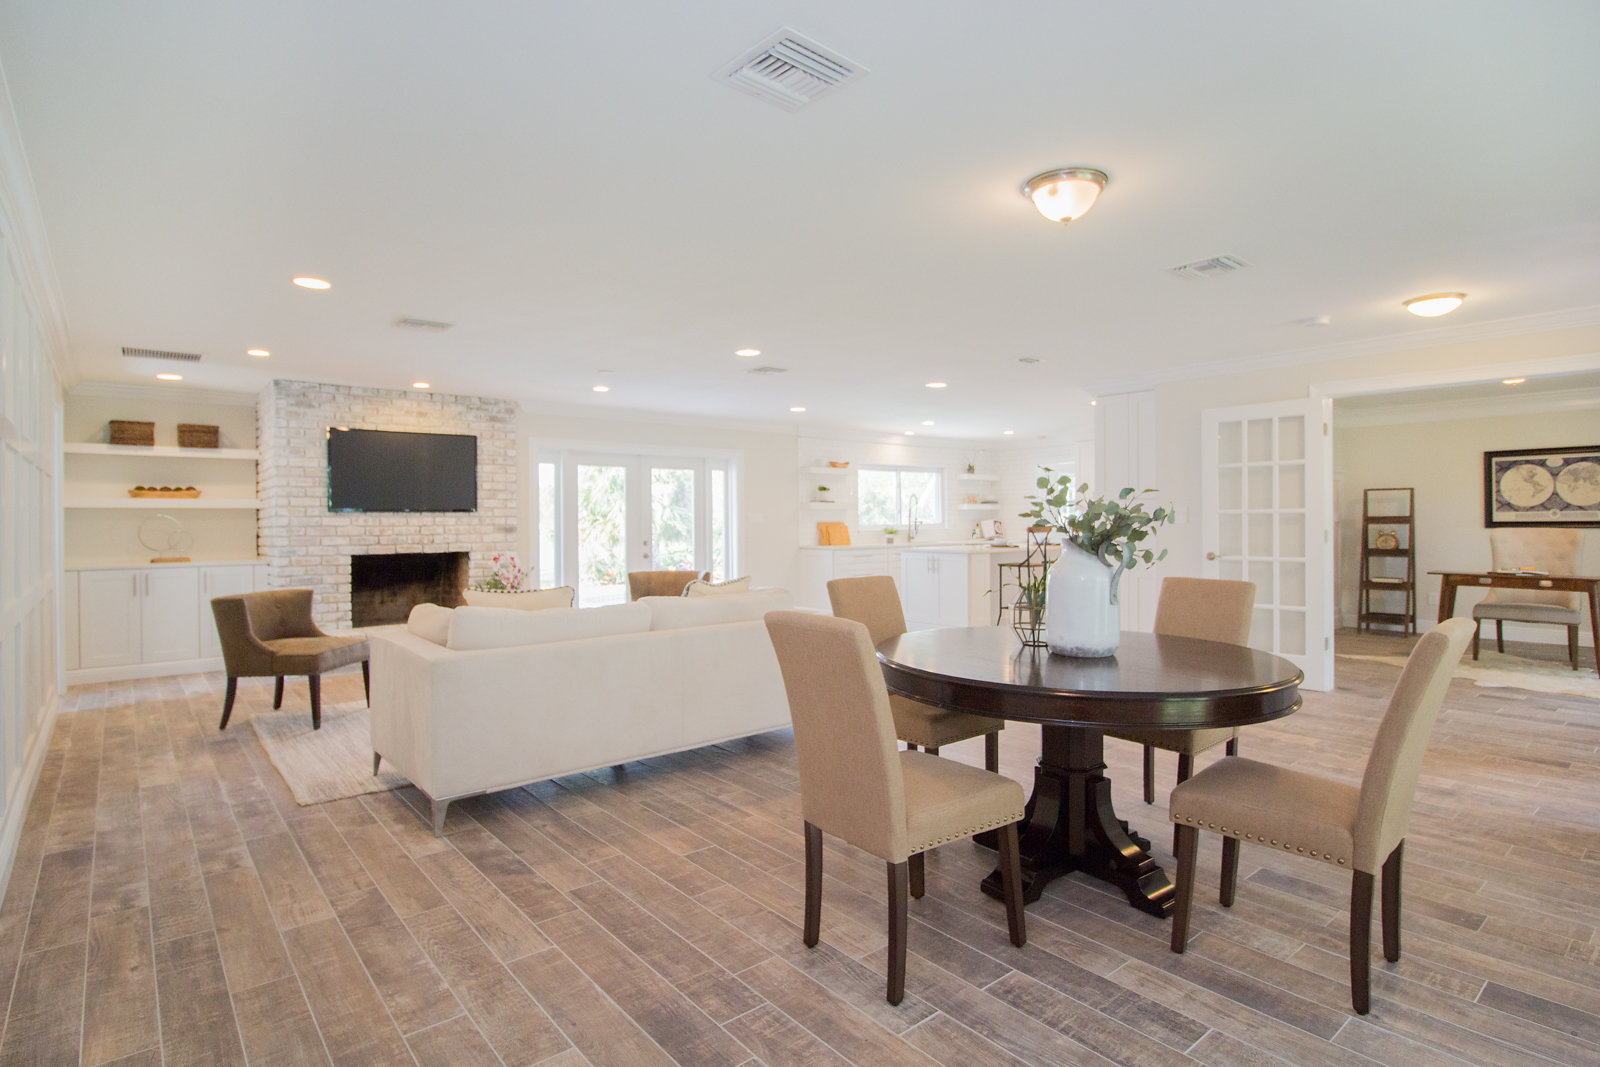 Portfolio - I and I Homes, Home Staging and Home Redesign